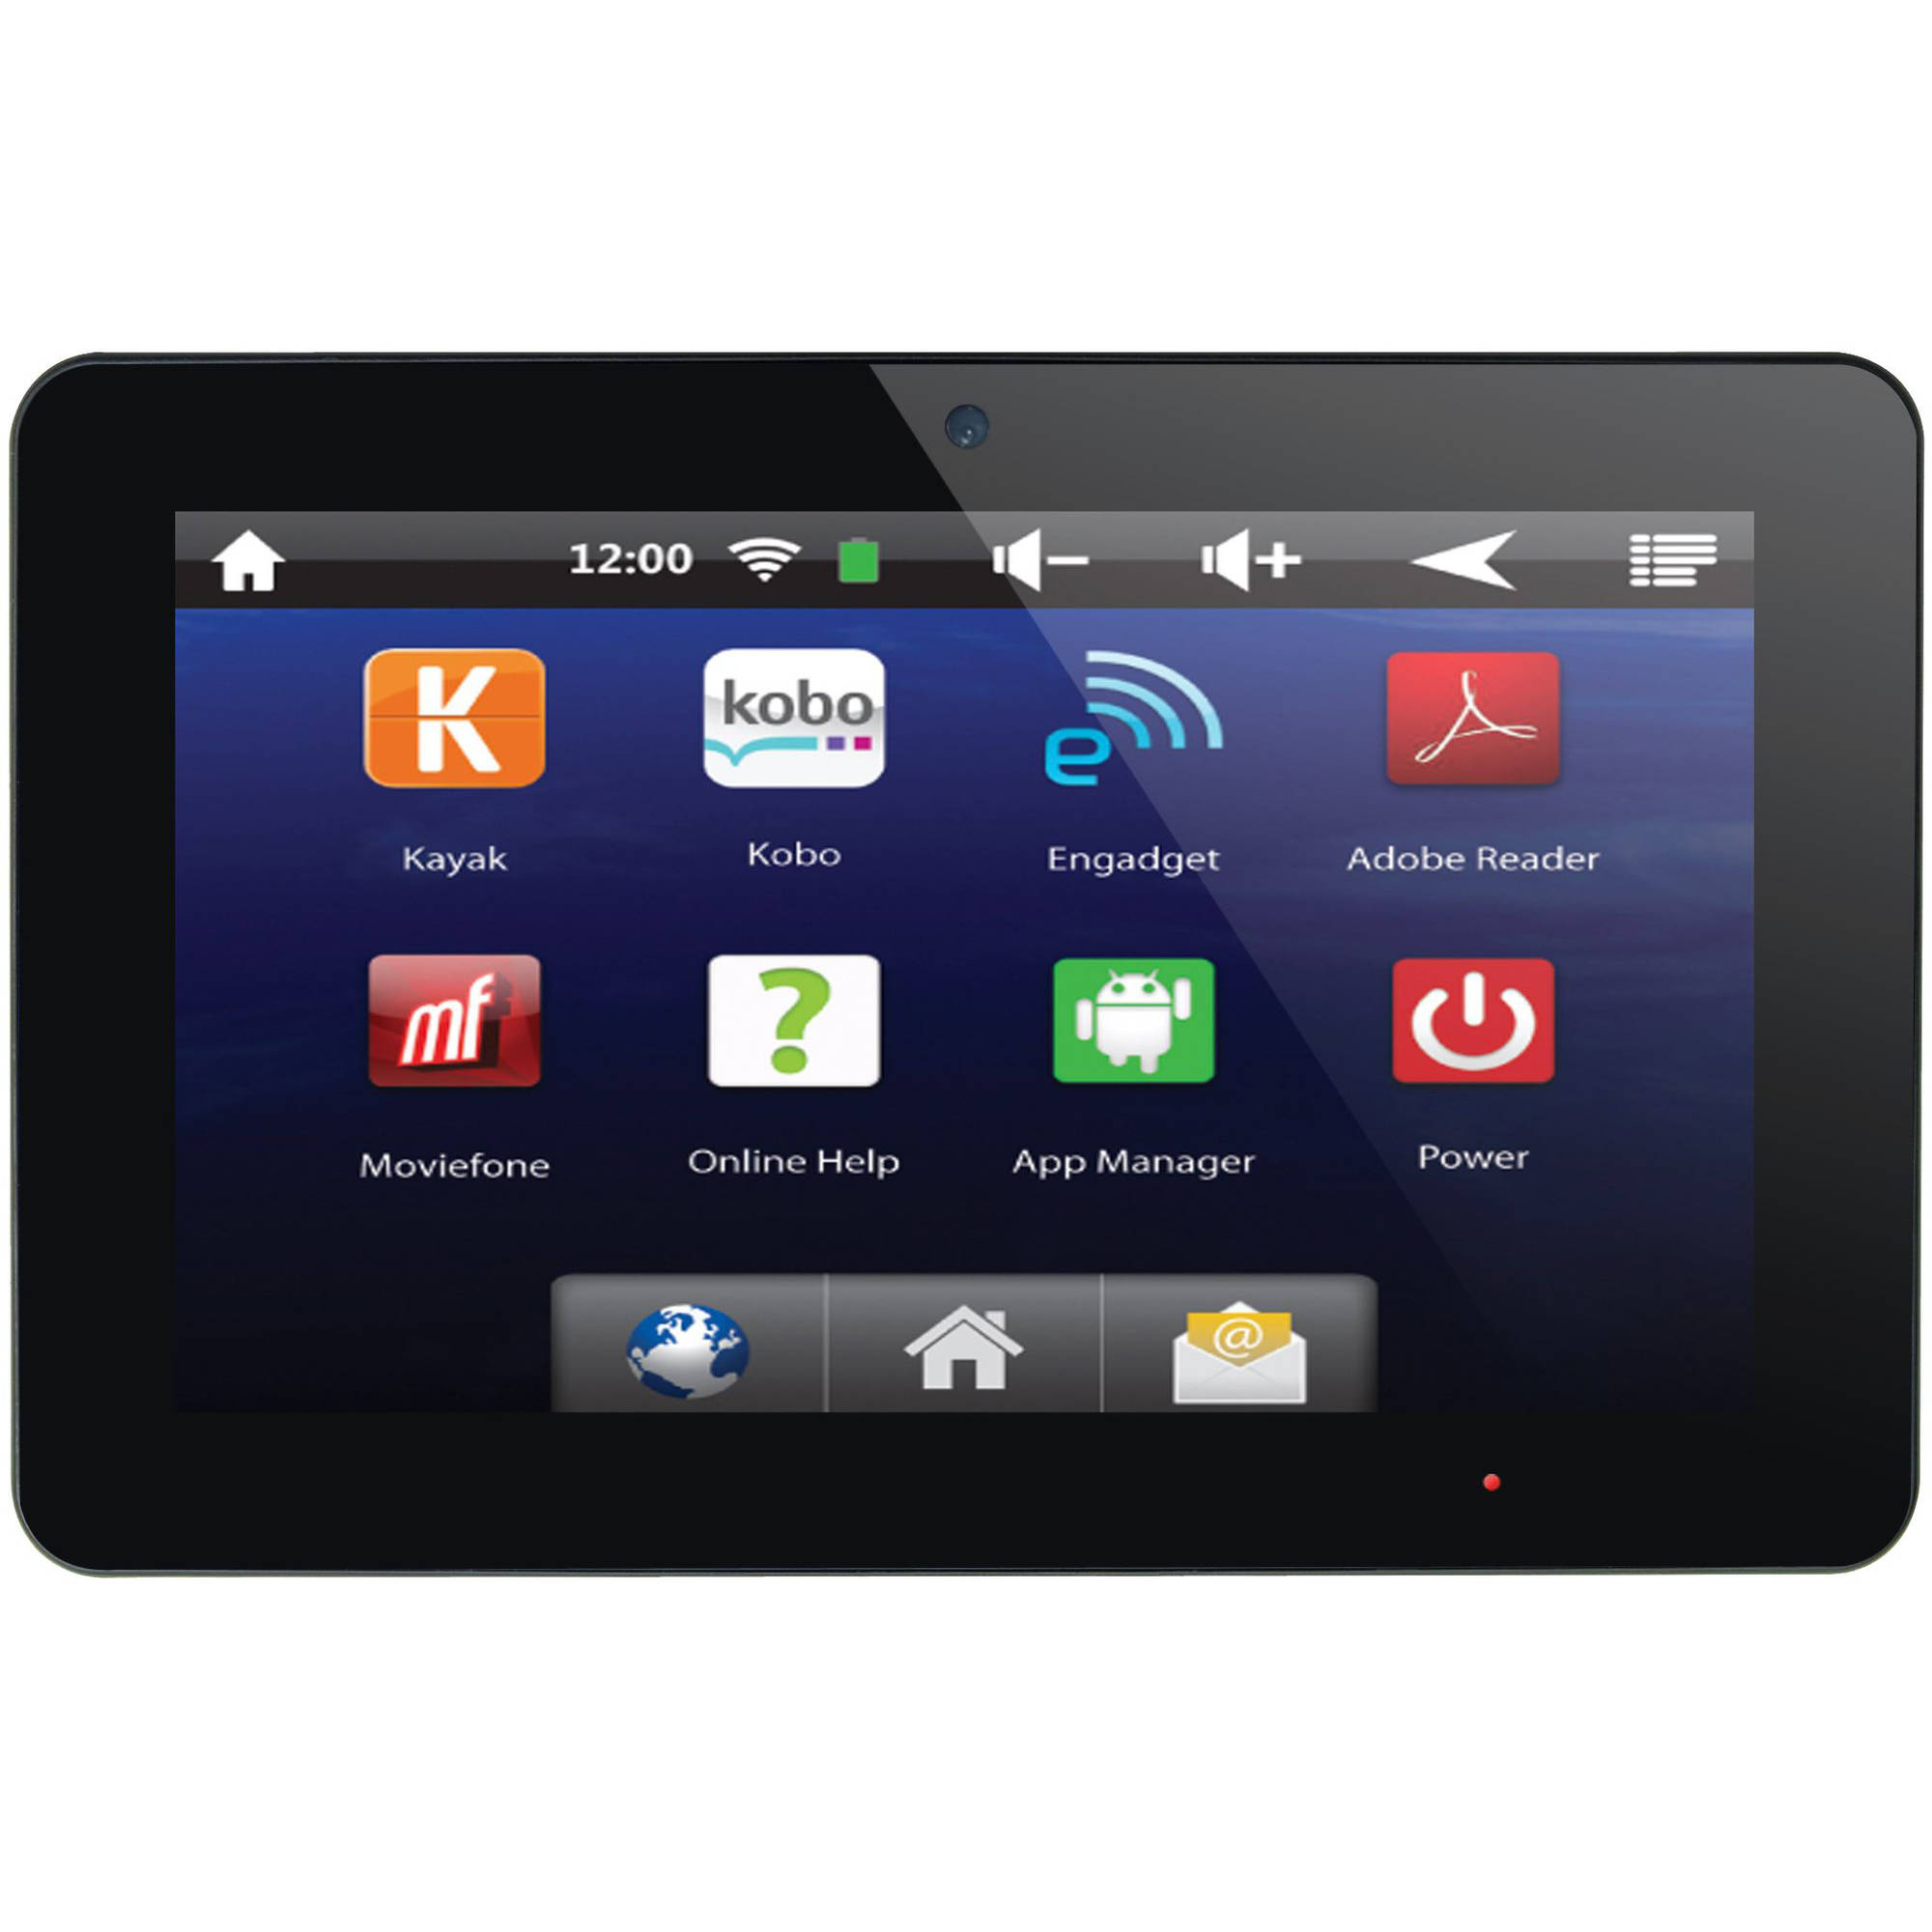 "SuperSonic Matrix MID with WiFi 10.1"" Touchscreen Tablet PC Featuring Android 4.2 (Jelly Bean) Operating System"